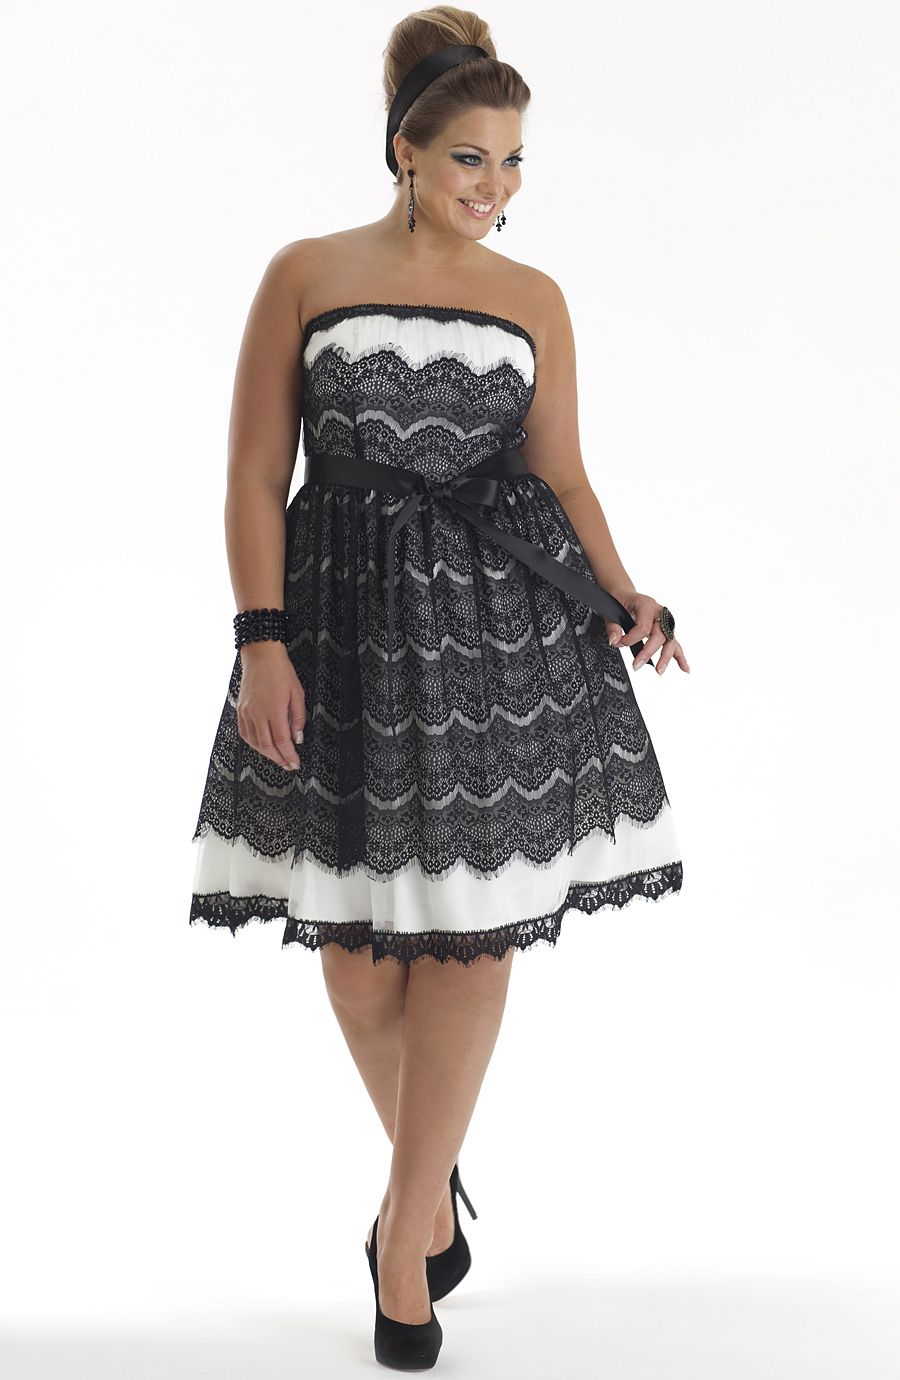 Plus+Size+Evening+Dresses | ... see dream diva plus size evening ...